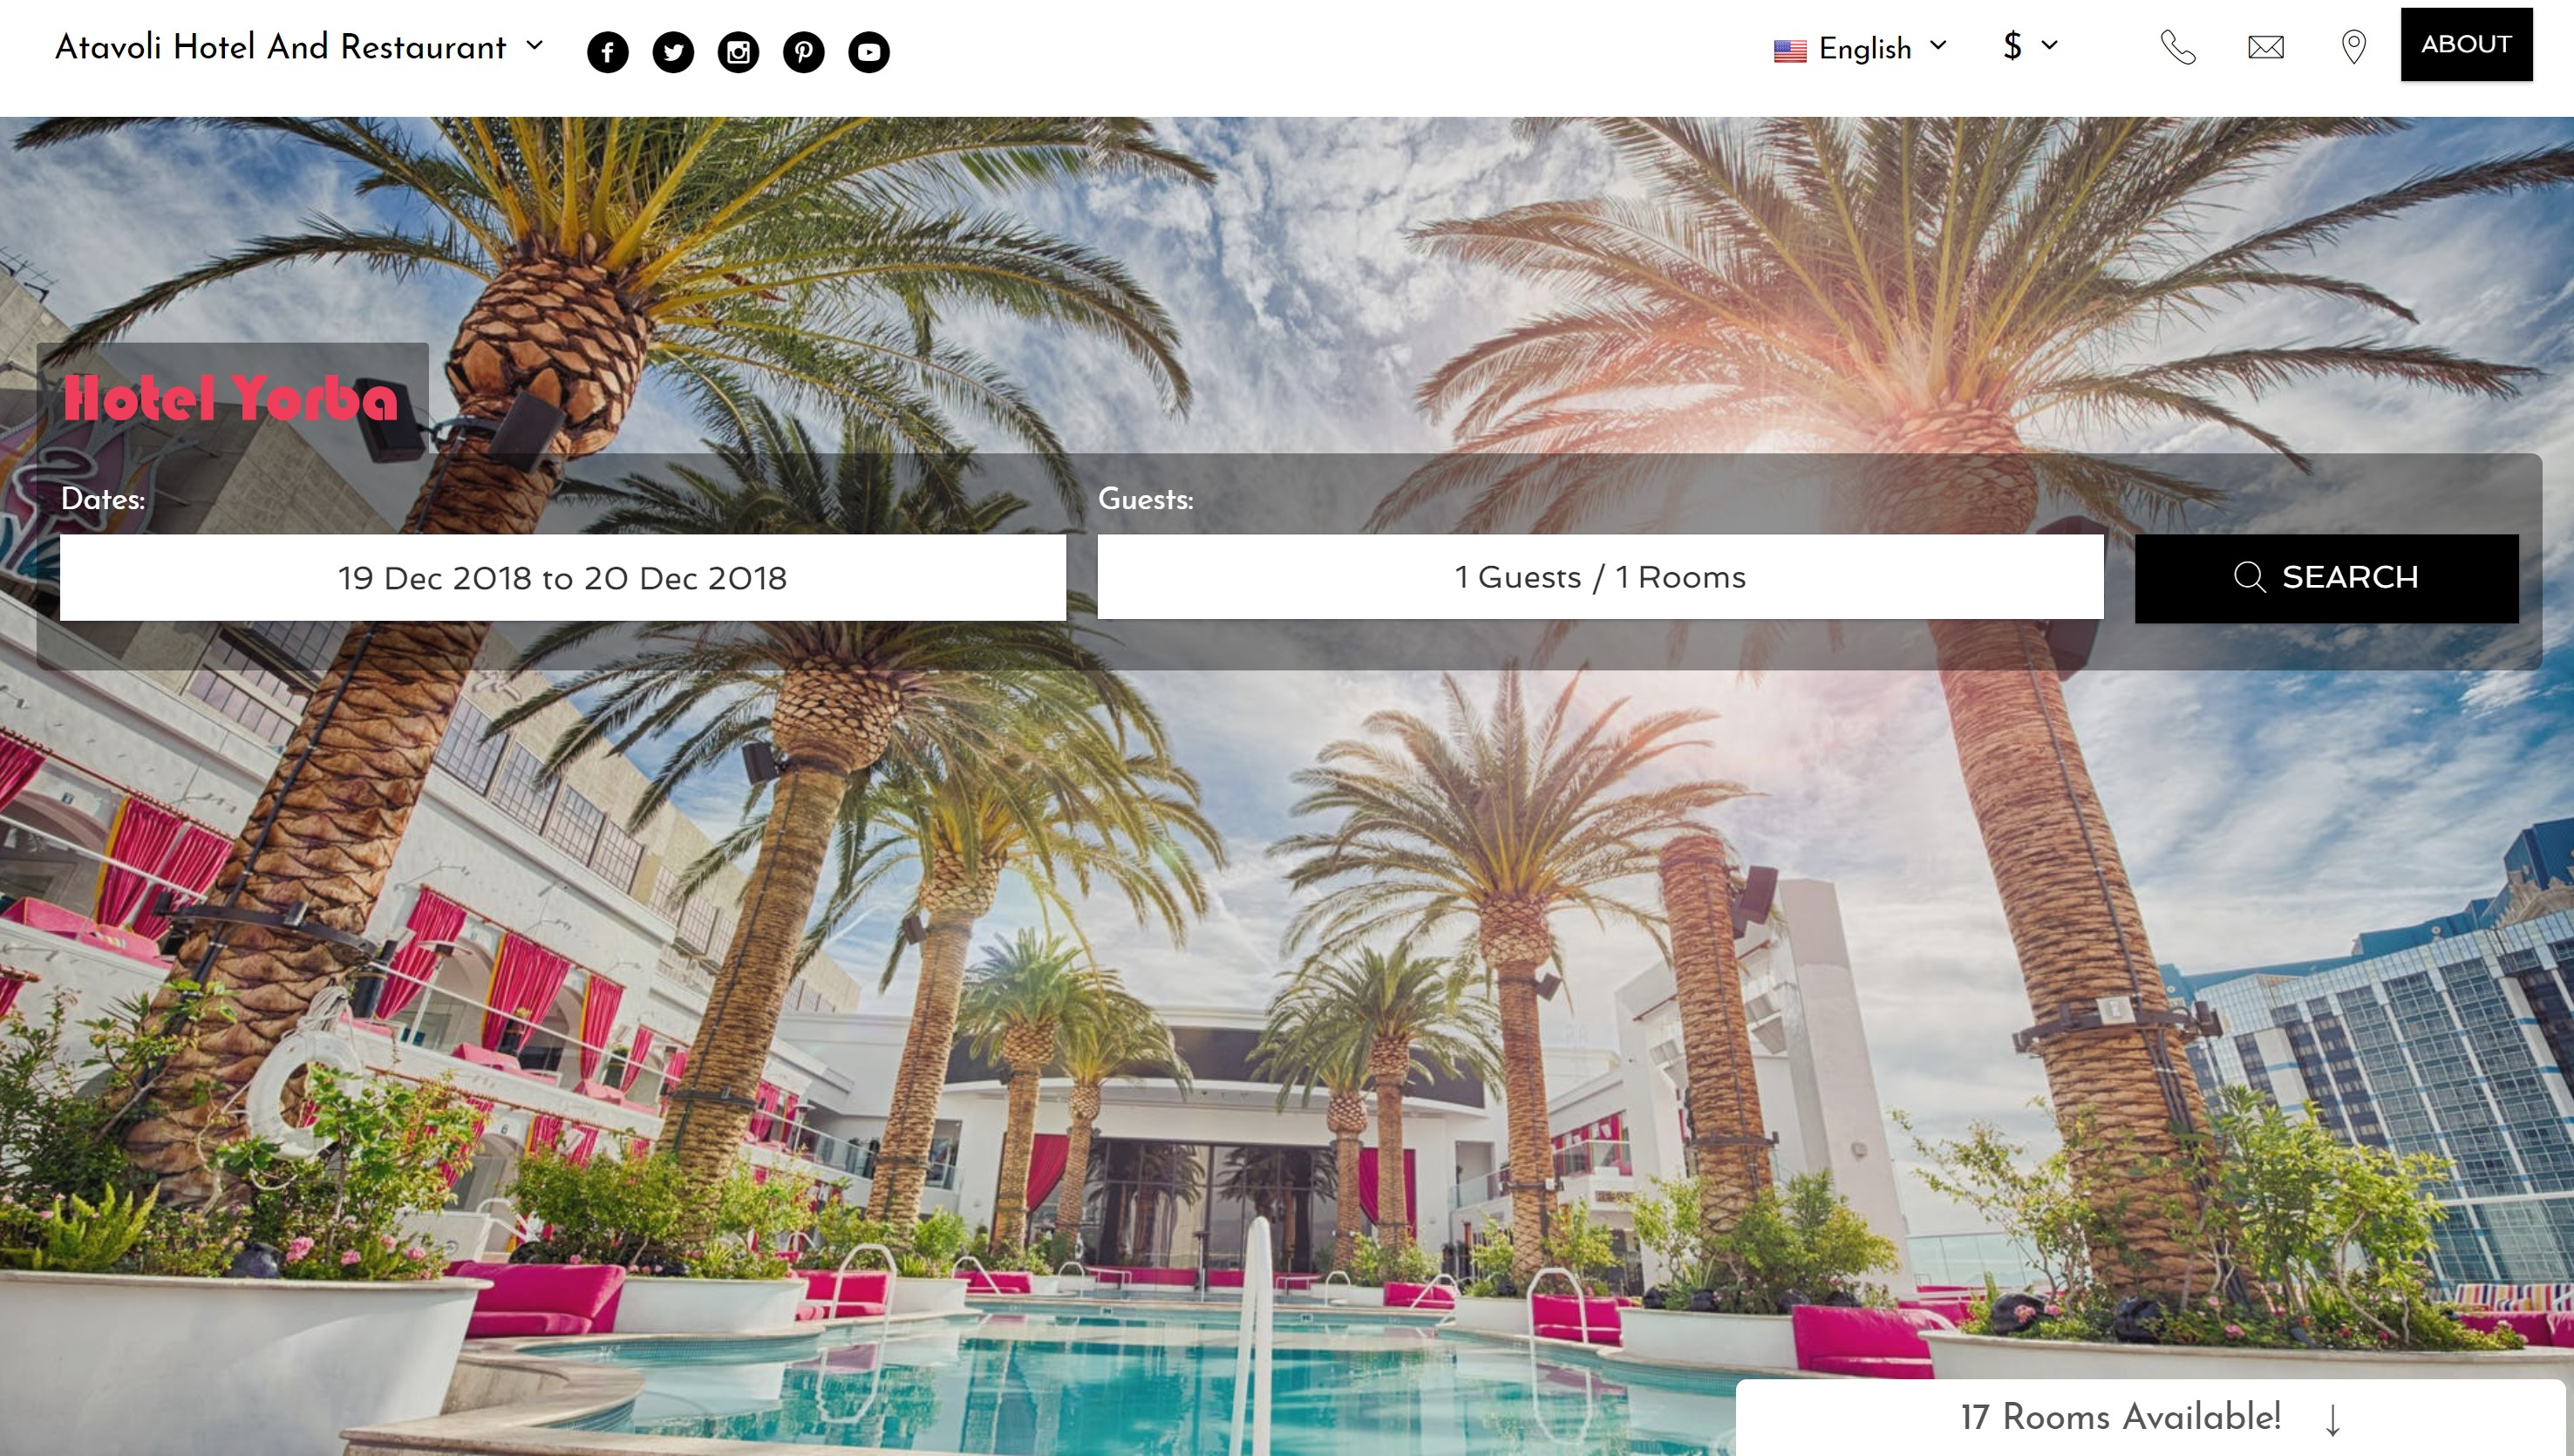 Your premium subscription to Bellebnb.com includes an embeddable booking widget, or 'booking button'. Your guests can book rooms directly from your hotel website. Visitors don't have to leave your website and reservations made through the booking button are commission free.